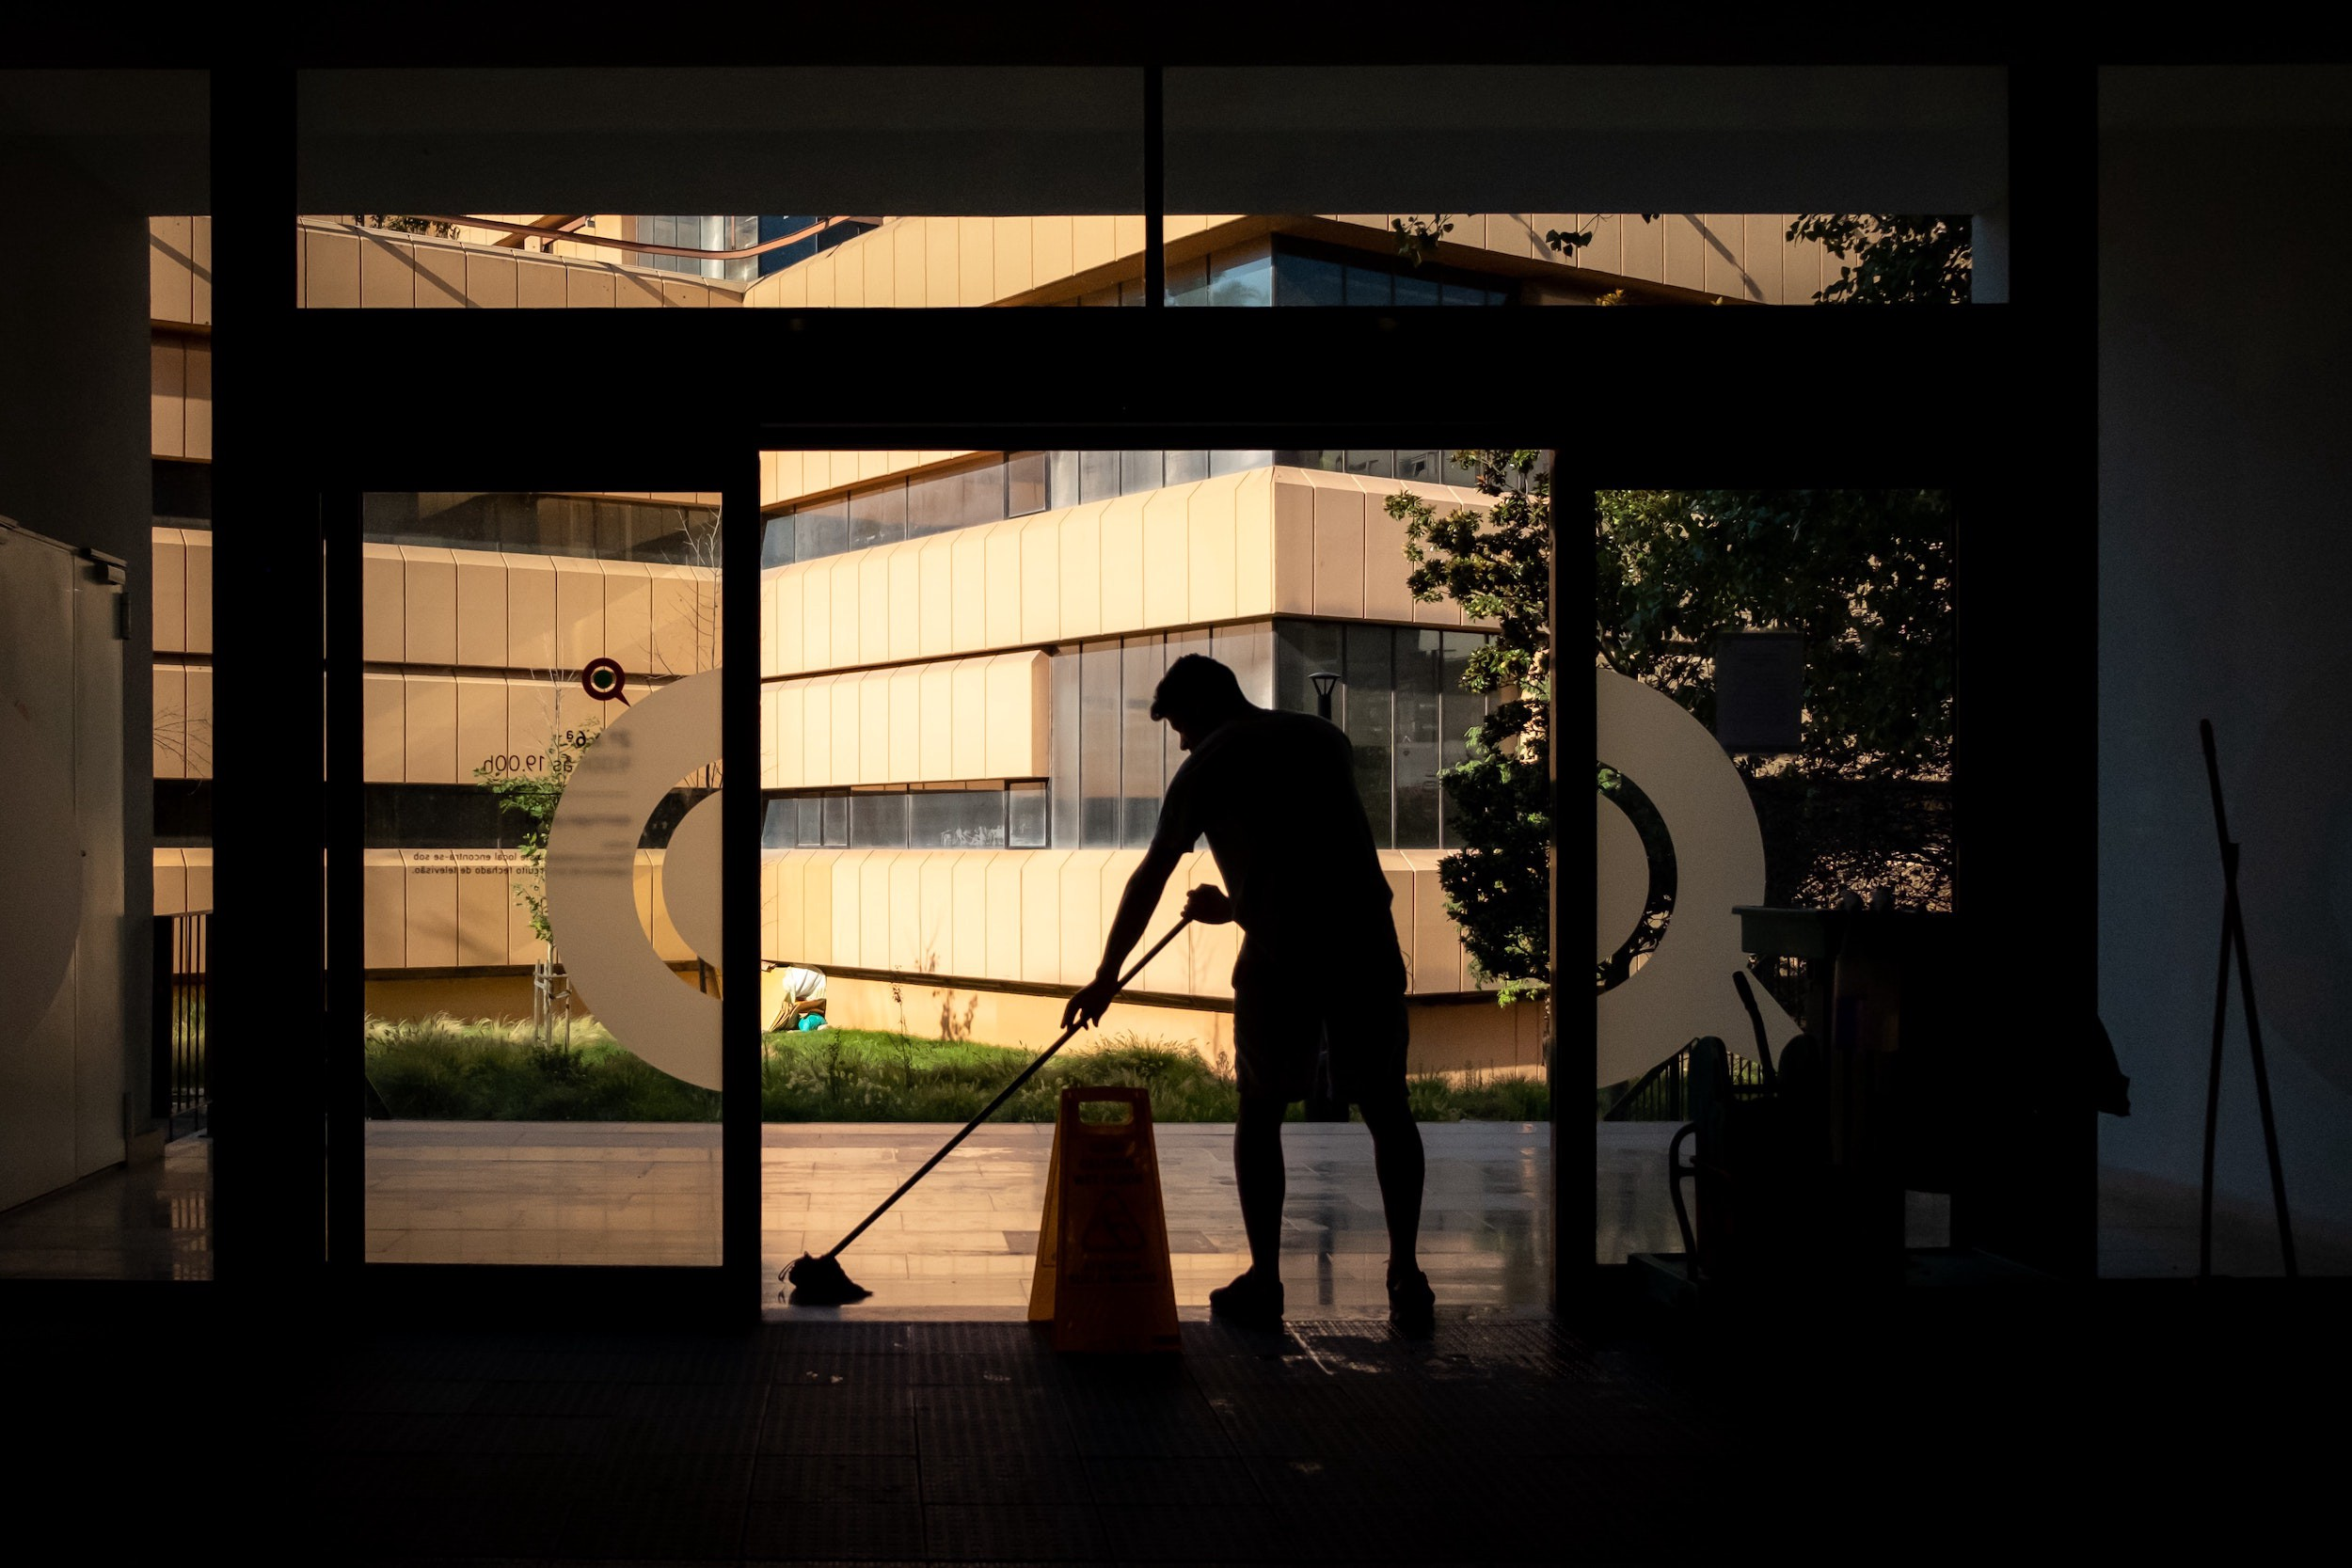 Person mops entryway of newly opened building